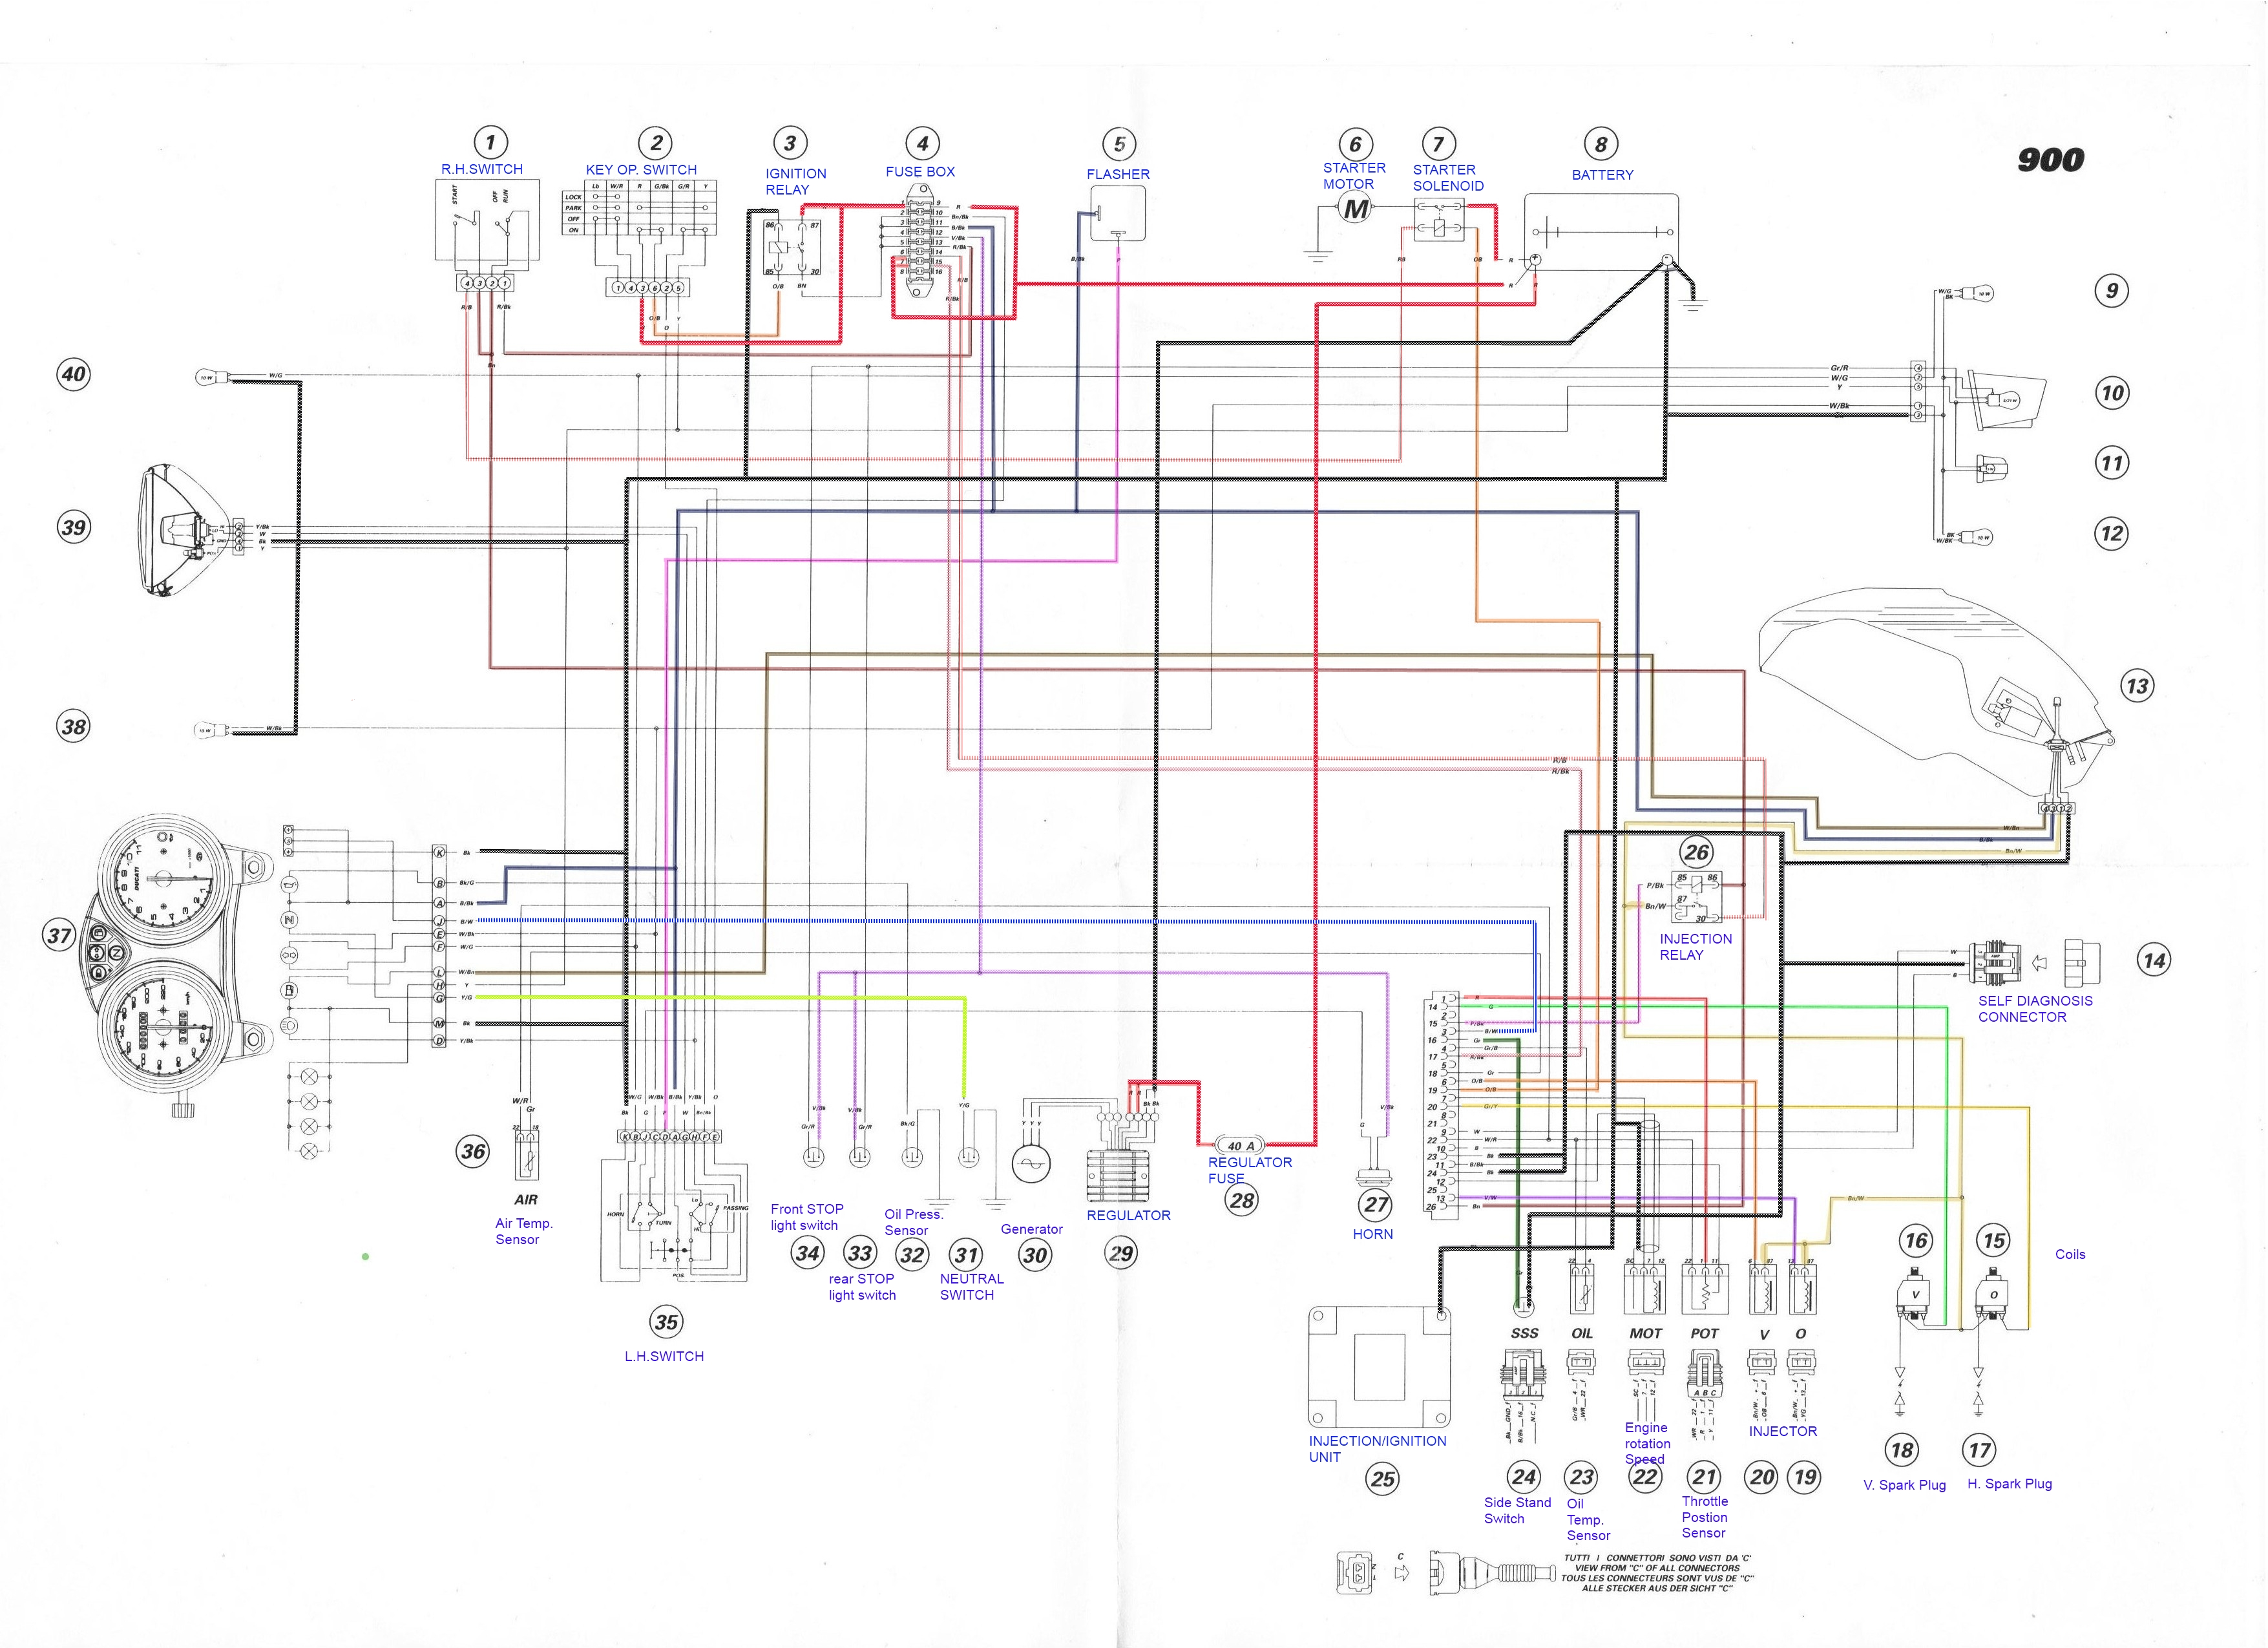 ducati st4 wiring diagram ducati st3s wiring diagram ducati s4 wiring all kind of wiring diagrams